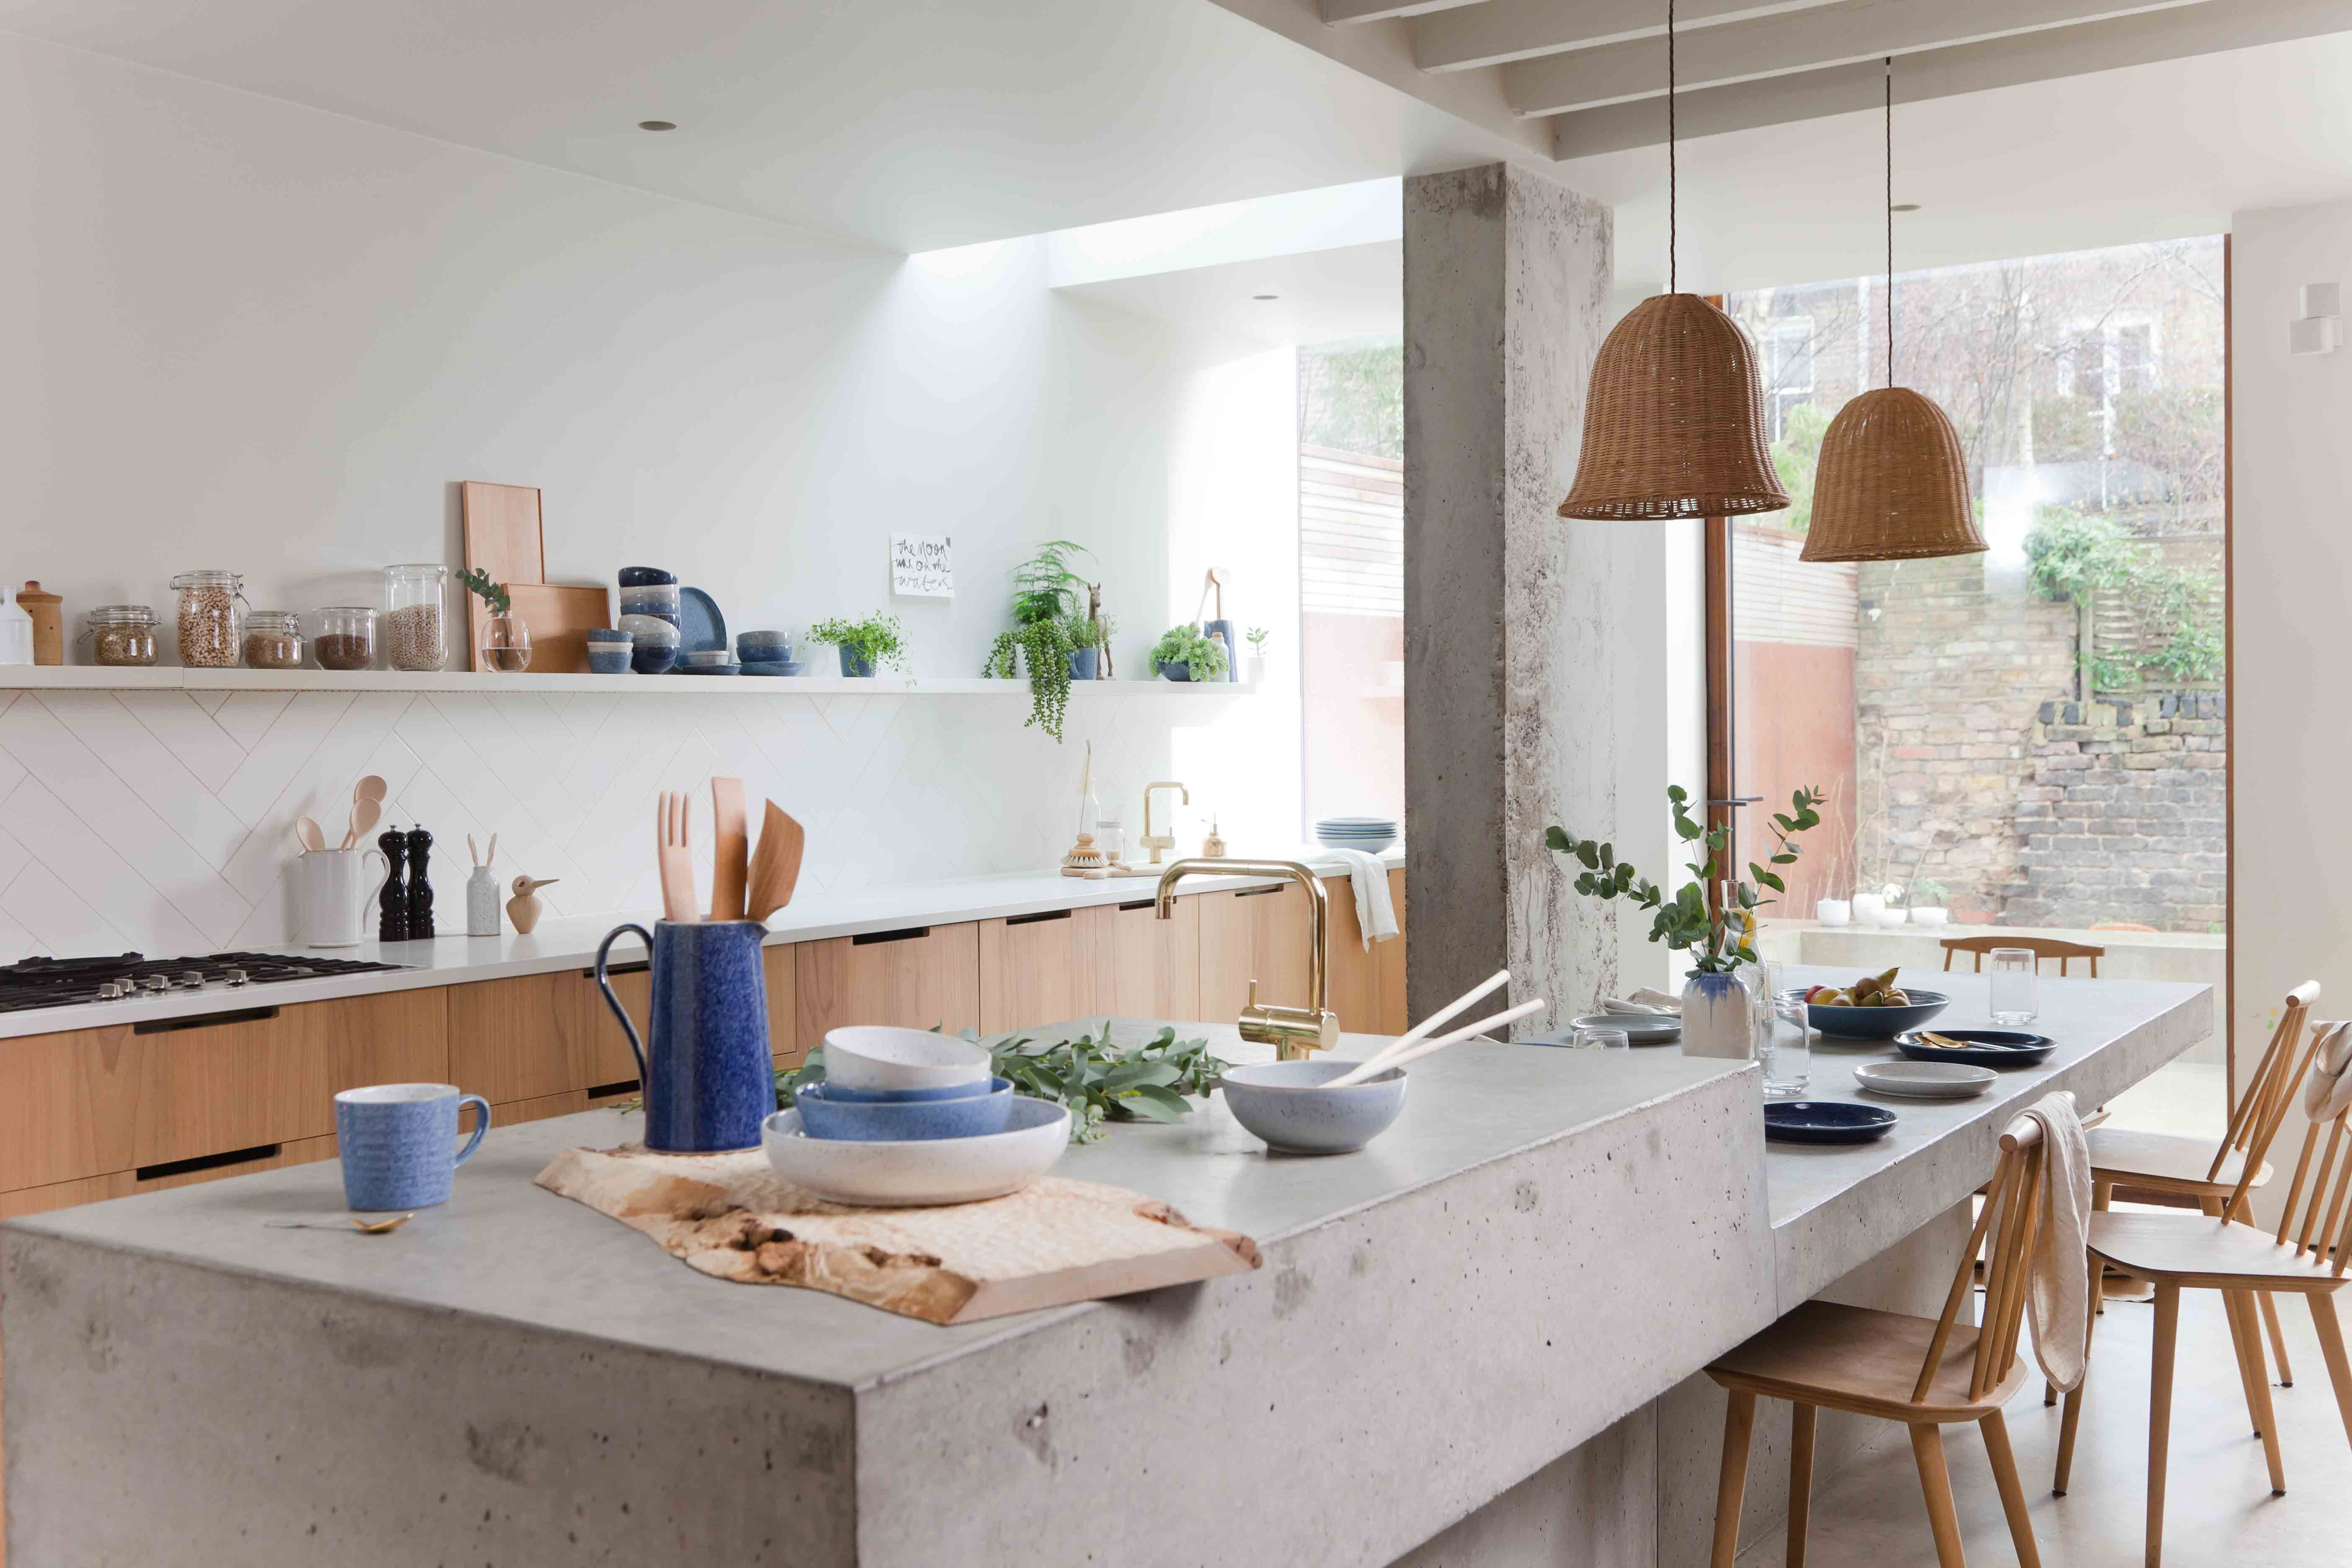 Denby Have Teamed Up With Designers, 2LG Studios, To Reveal A Mindful  Kitchen Featuring